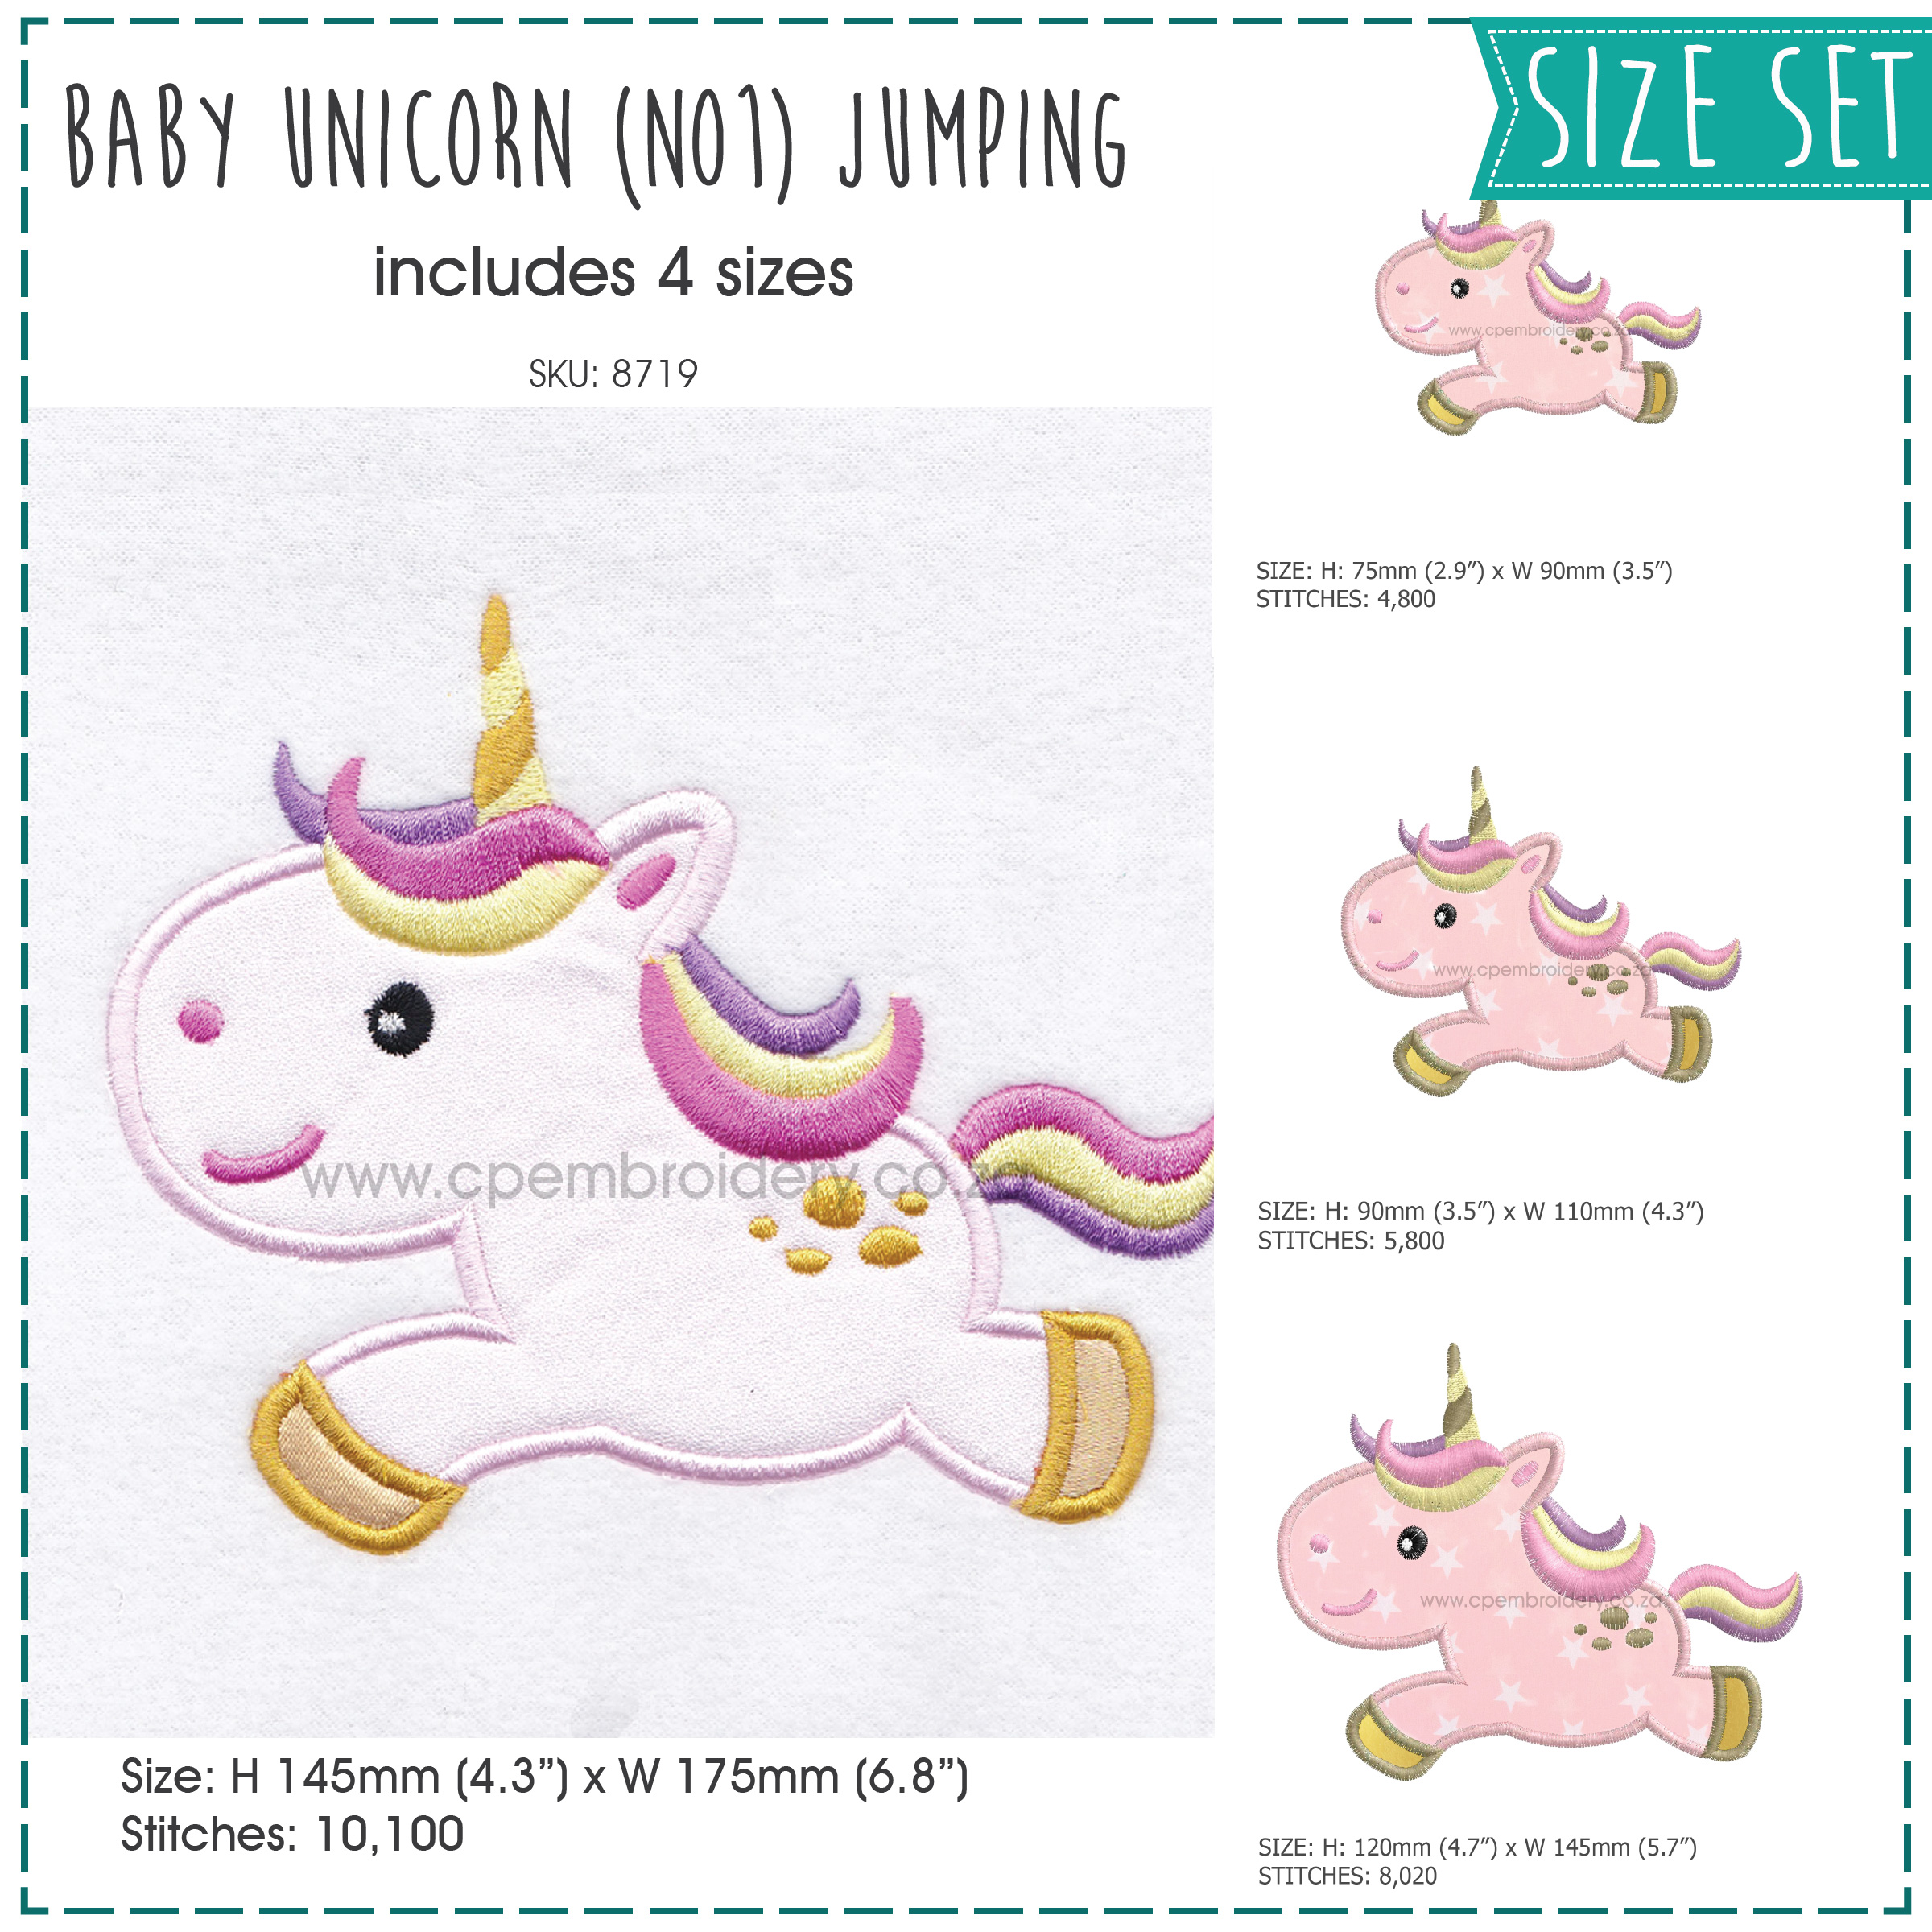 baby pony unicorn one horn mythical horse jumping number 1 machine embroidery download design size set